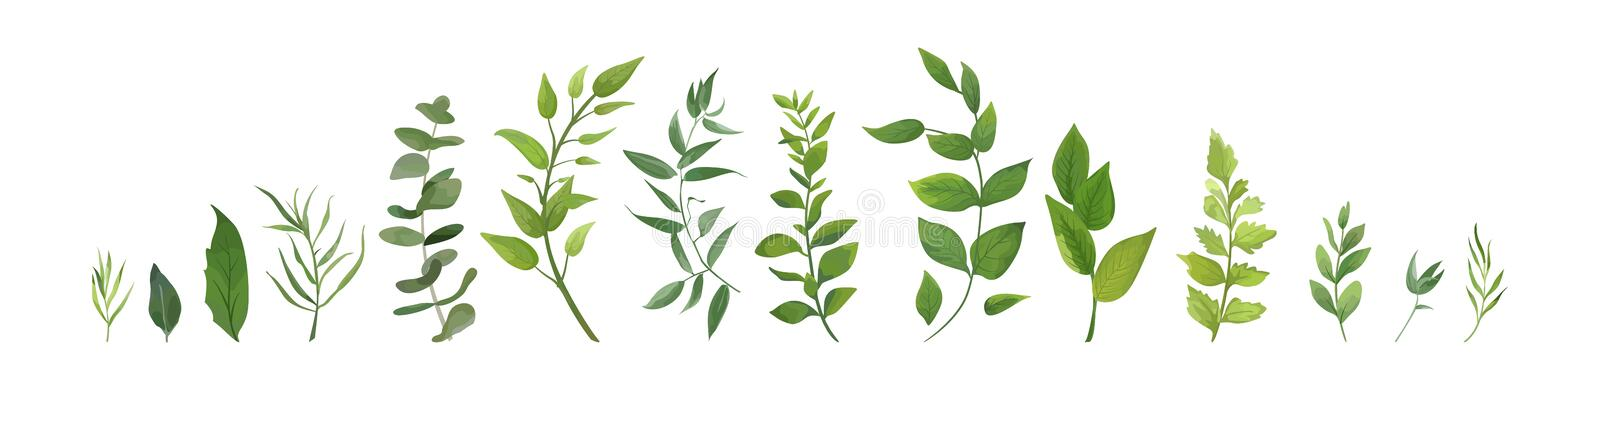 Vector designer elements set collection of green forest fern, tr. Opical green eucalyptus greenery art foliage natural leaves herbs in watercolor style stock illustration